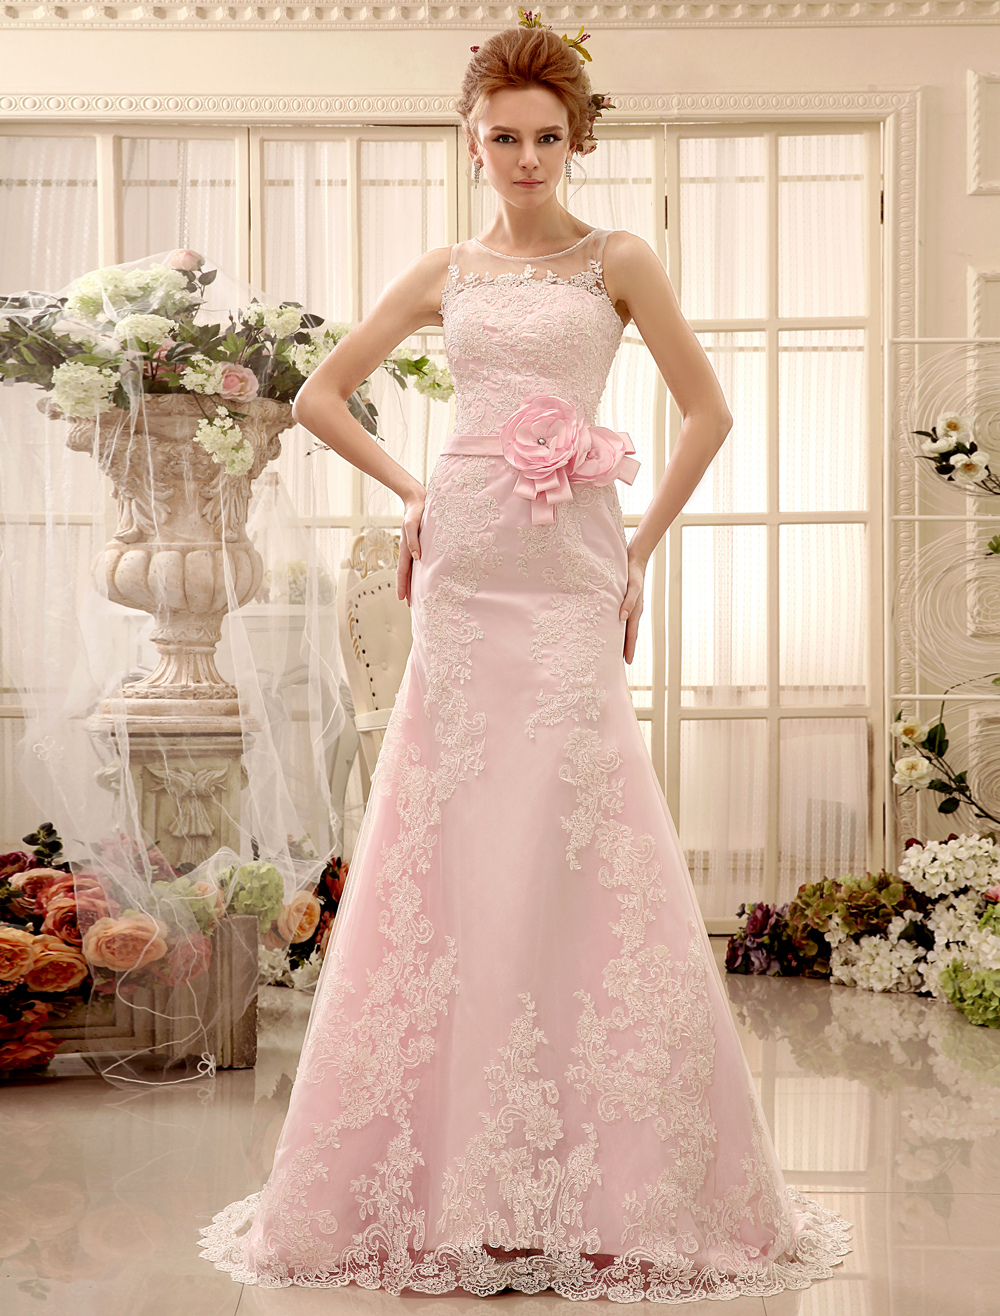 Flower Panel Train Pink Lace Wedding Dress For Bride with Sheath ...